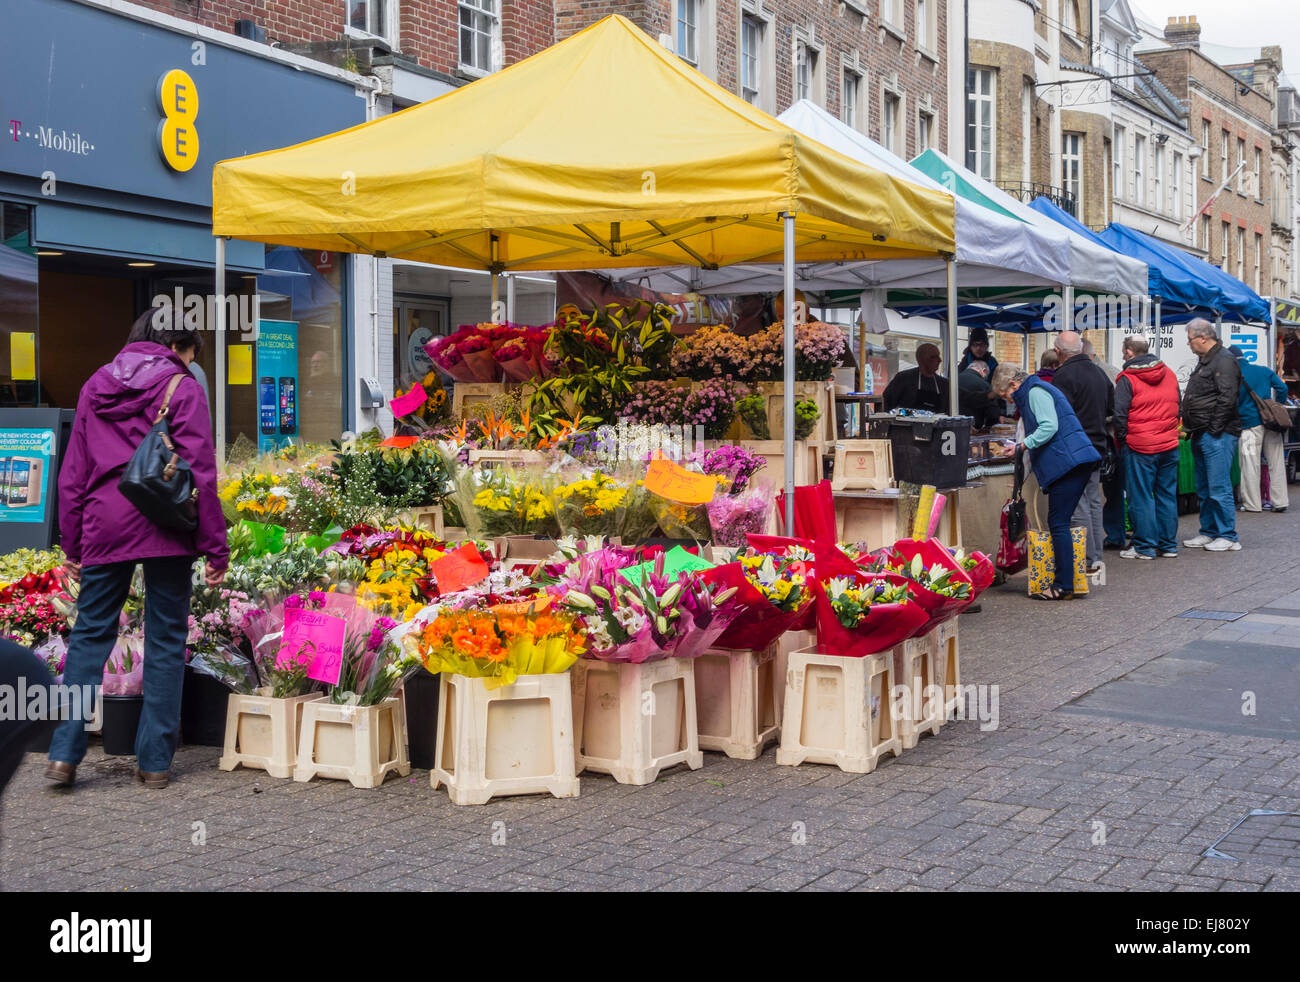 Flower Stall at Outdoor Market in Dorchester, UK Stock ...